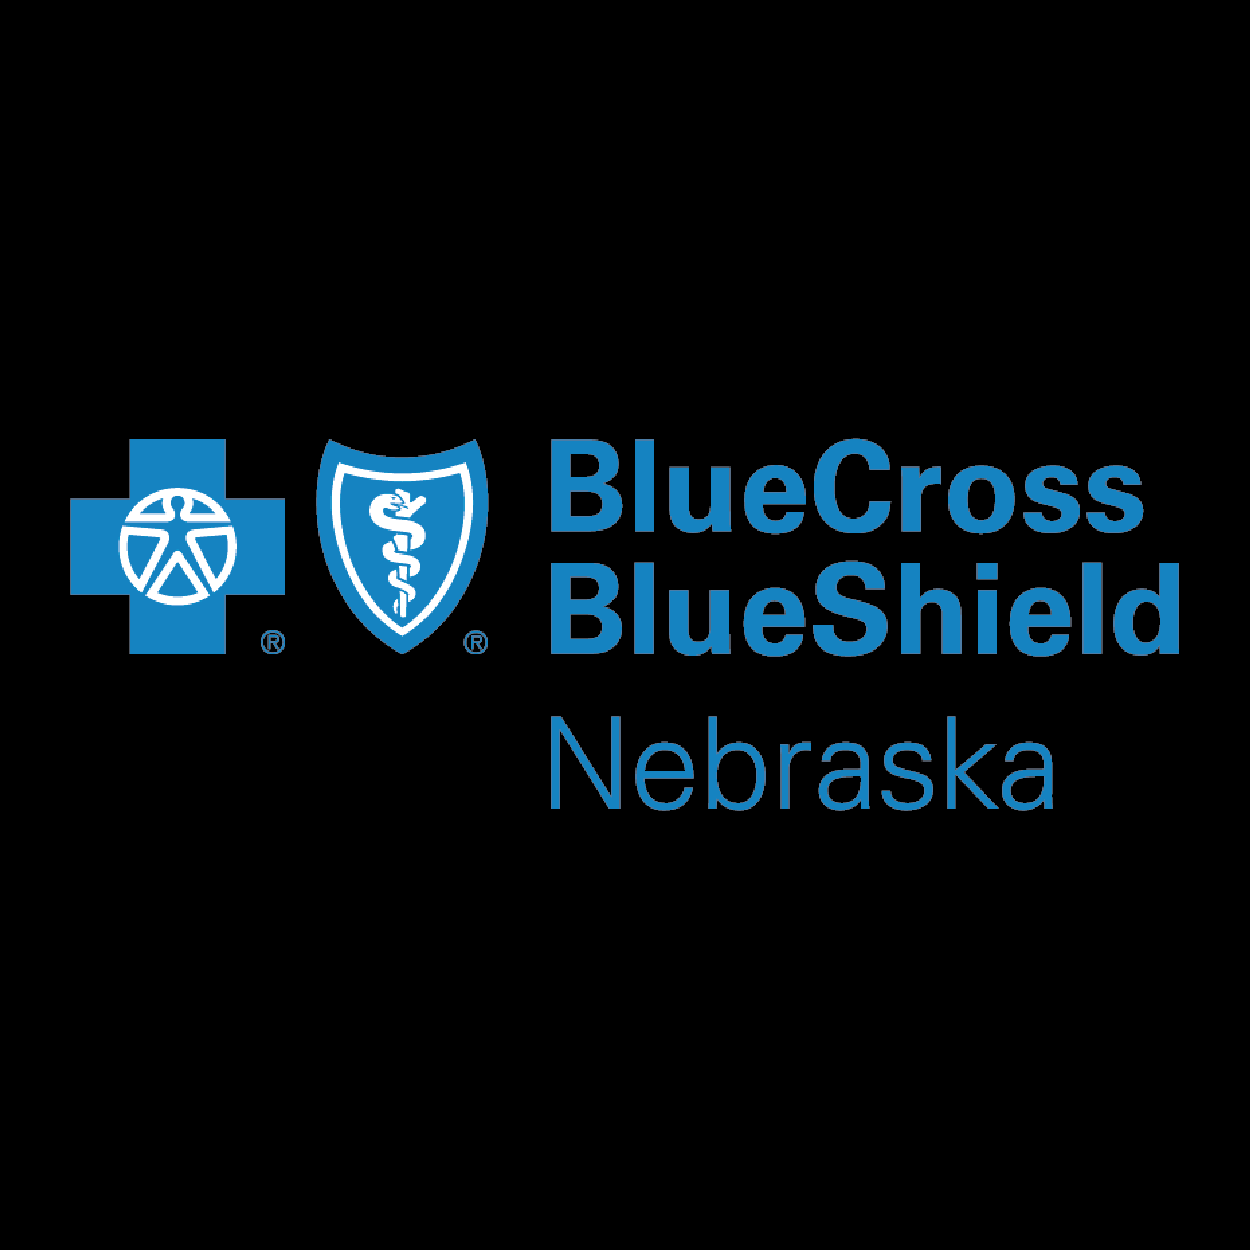 Blue Cross Blue Shield Nebraska